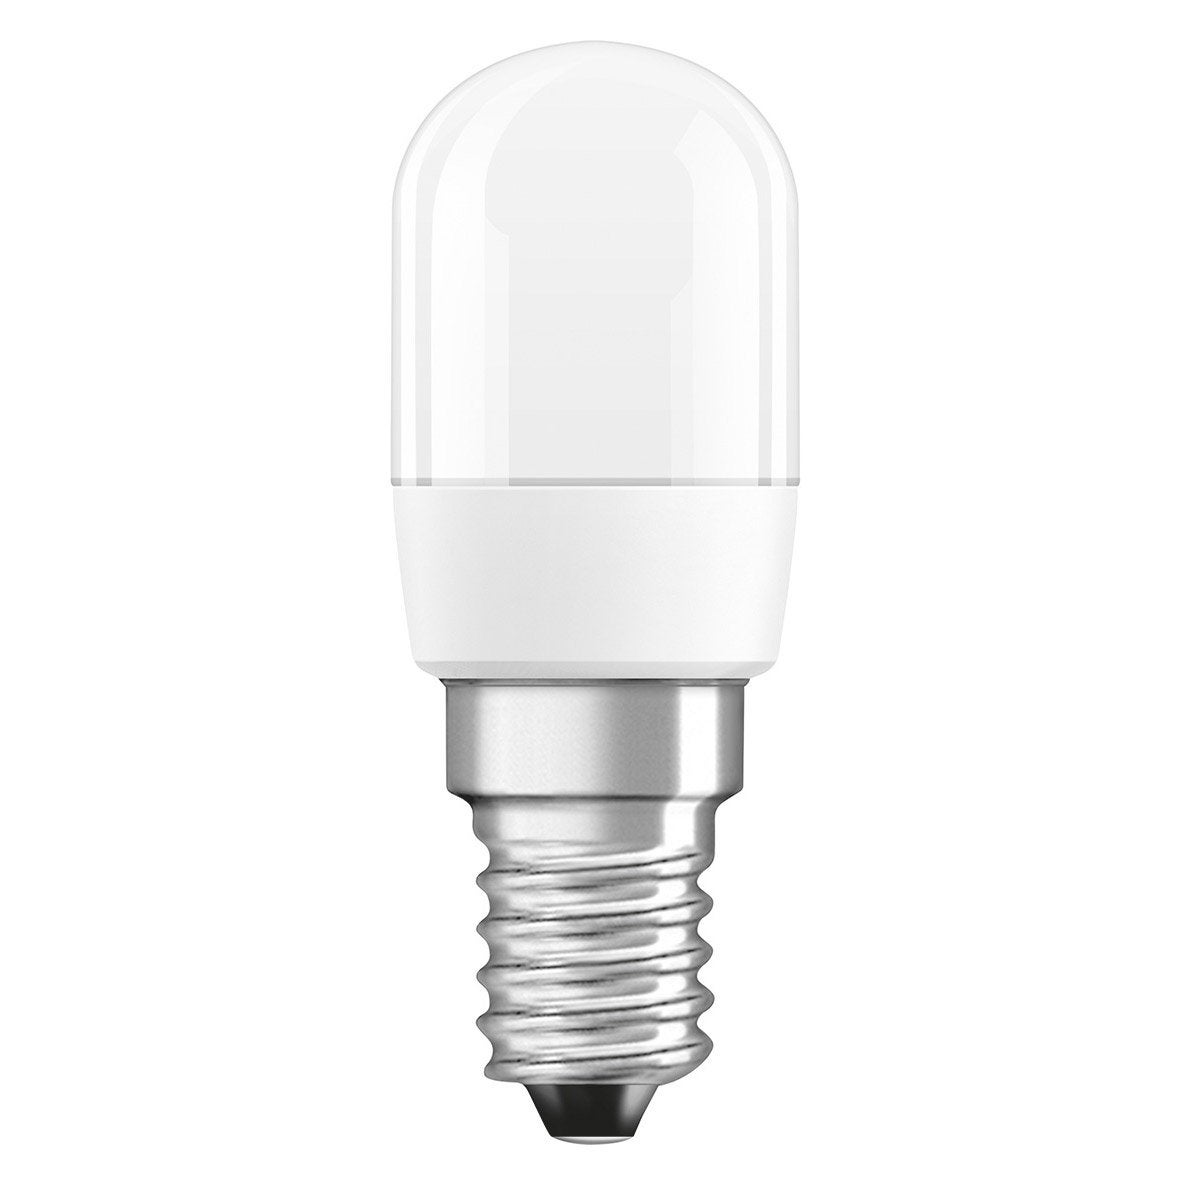 ampoule tube led 1 5w osram e14 lumi re du jour env 6500k leroy merlin. Black Bedroom Furniture Sets. Home Design Ideas